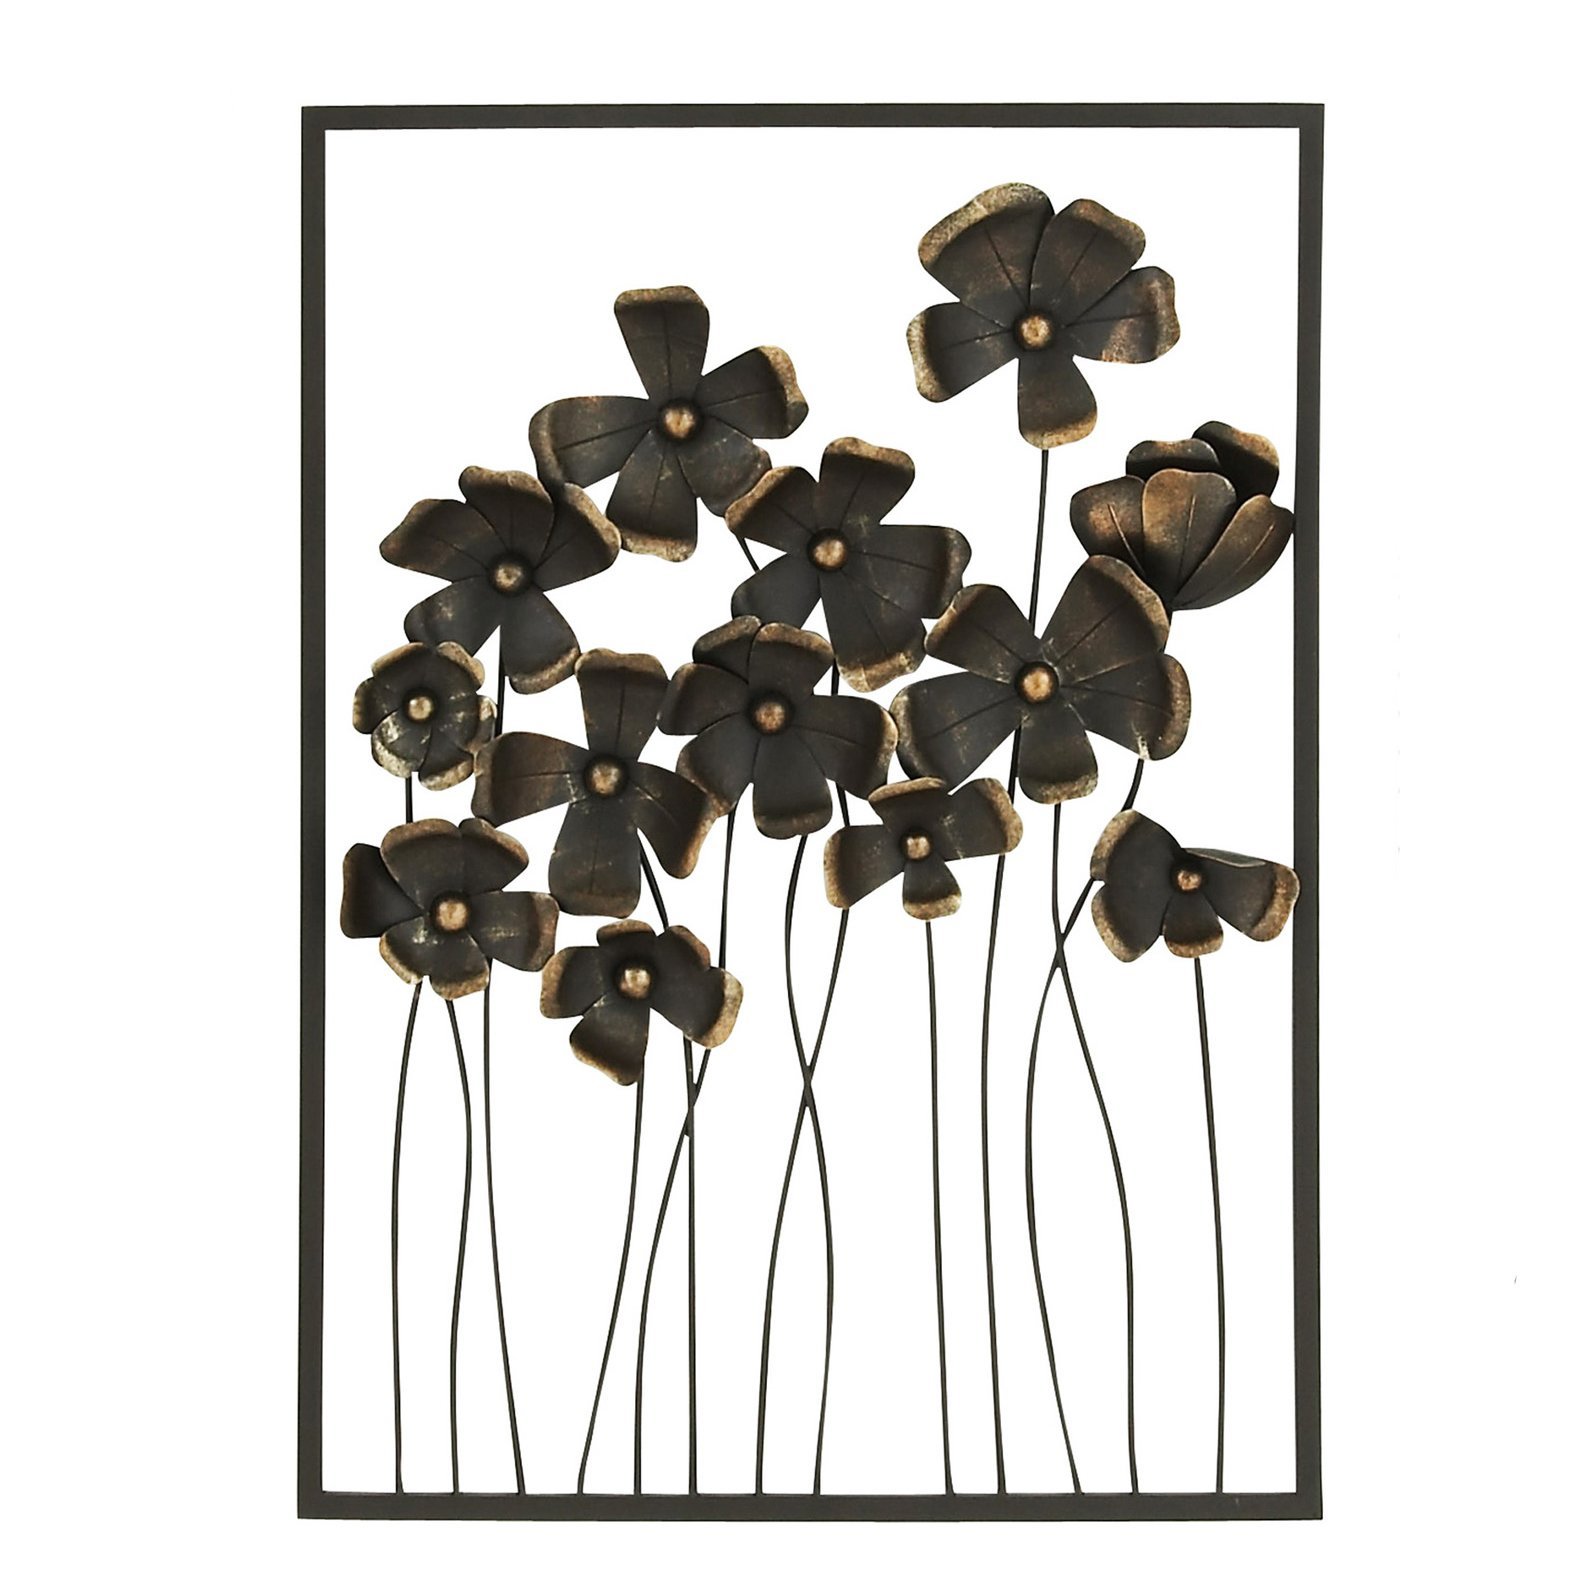 3 Piece Metal Wall Art - Ronniebrownlifesystems within Flower Urban Design Metal Wall Decor (Image 1 of 30)